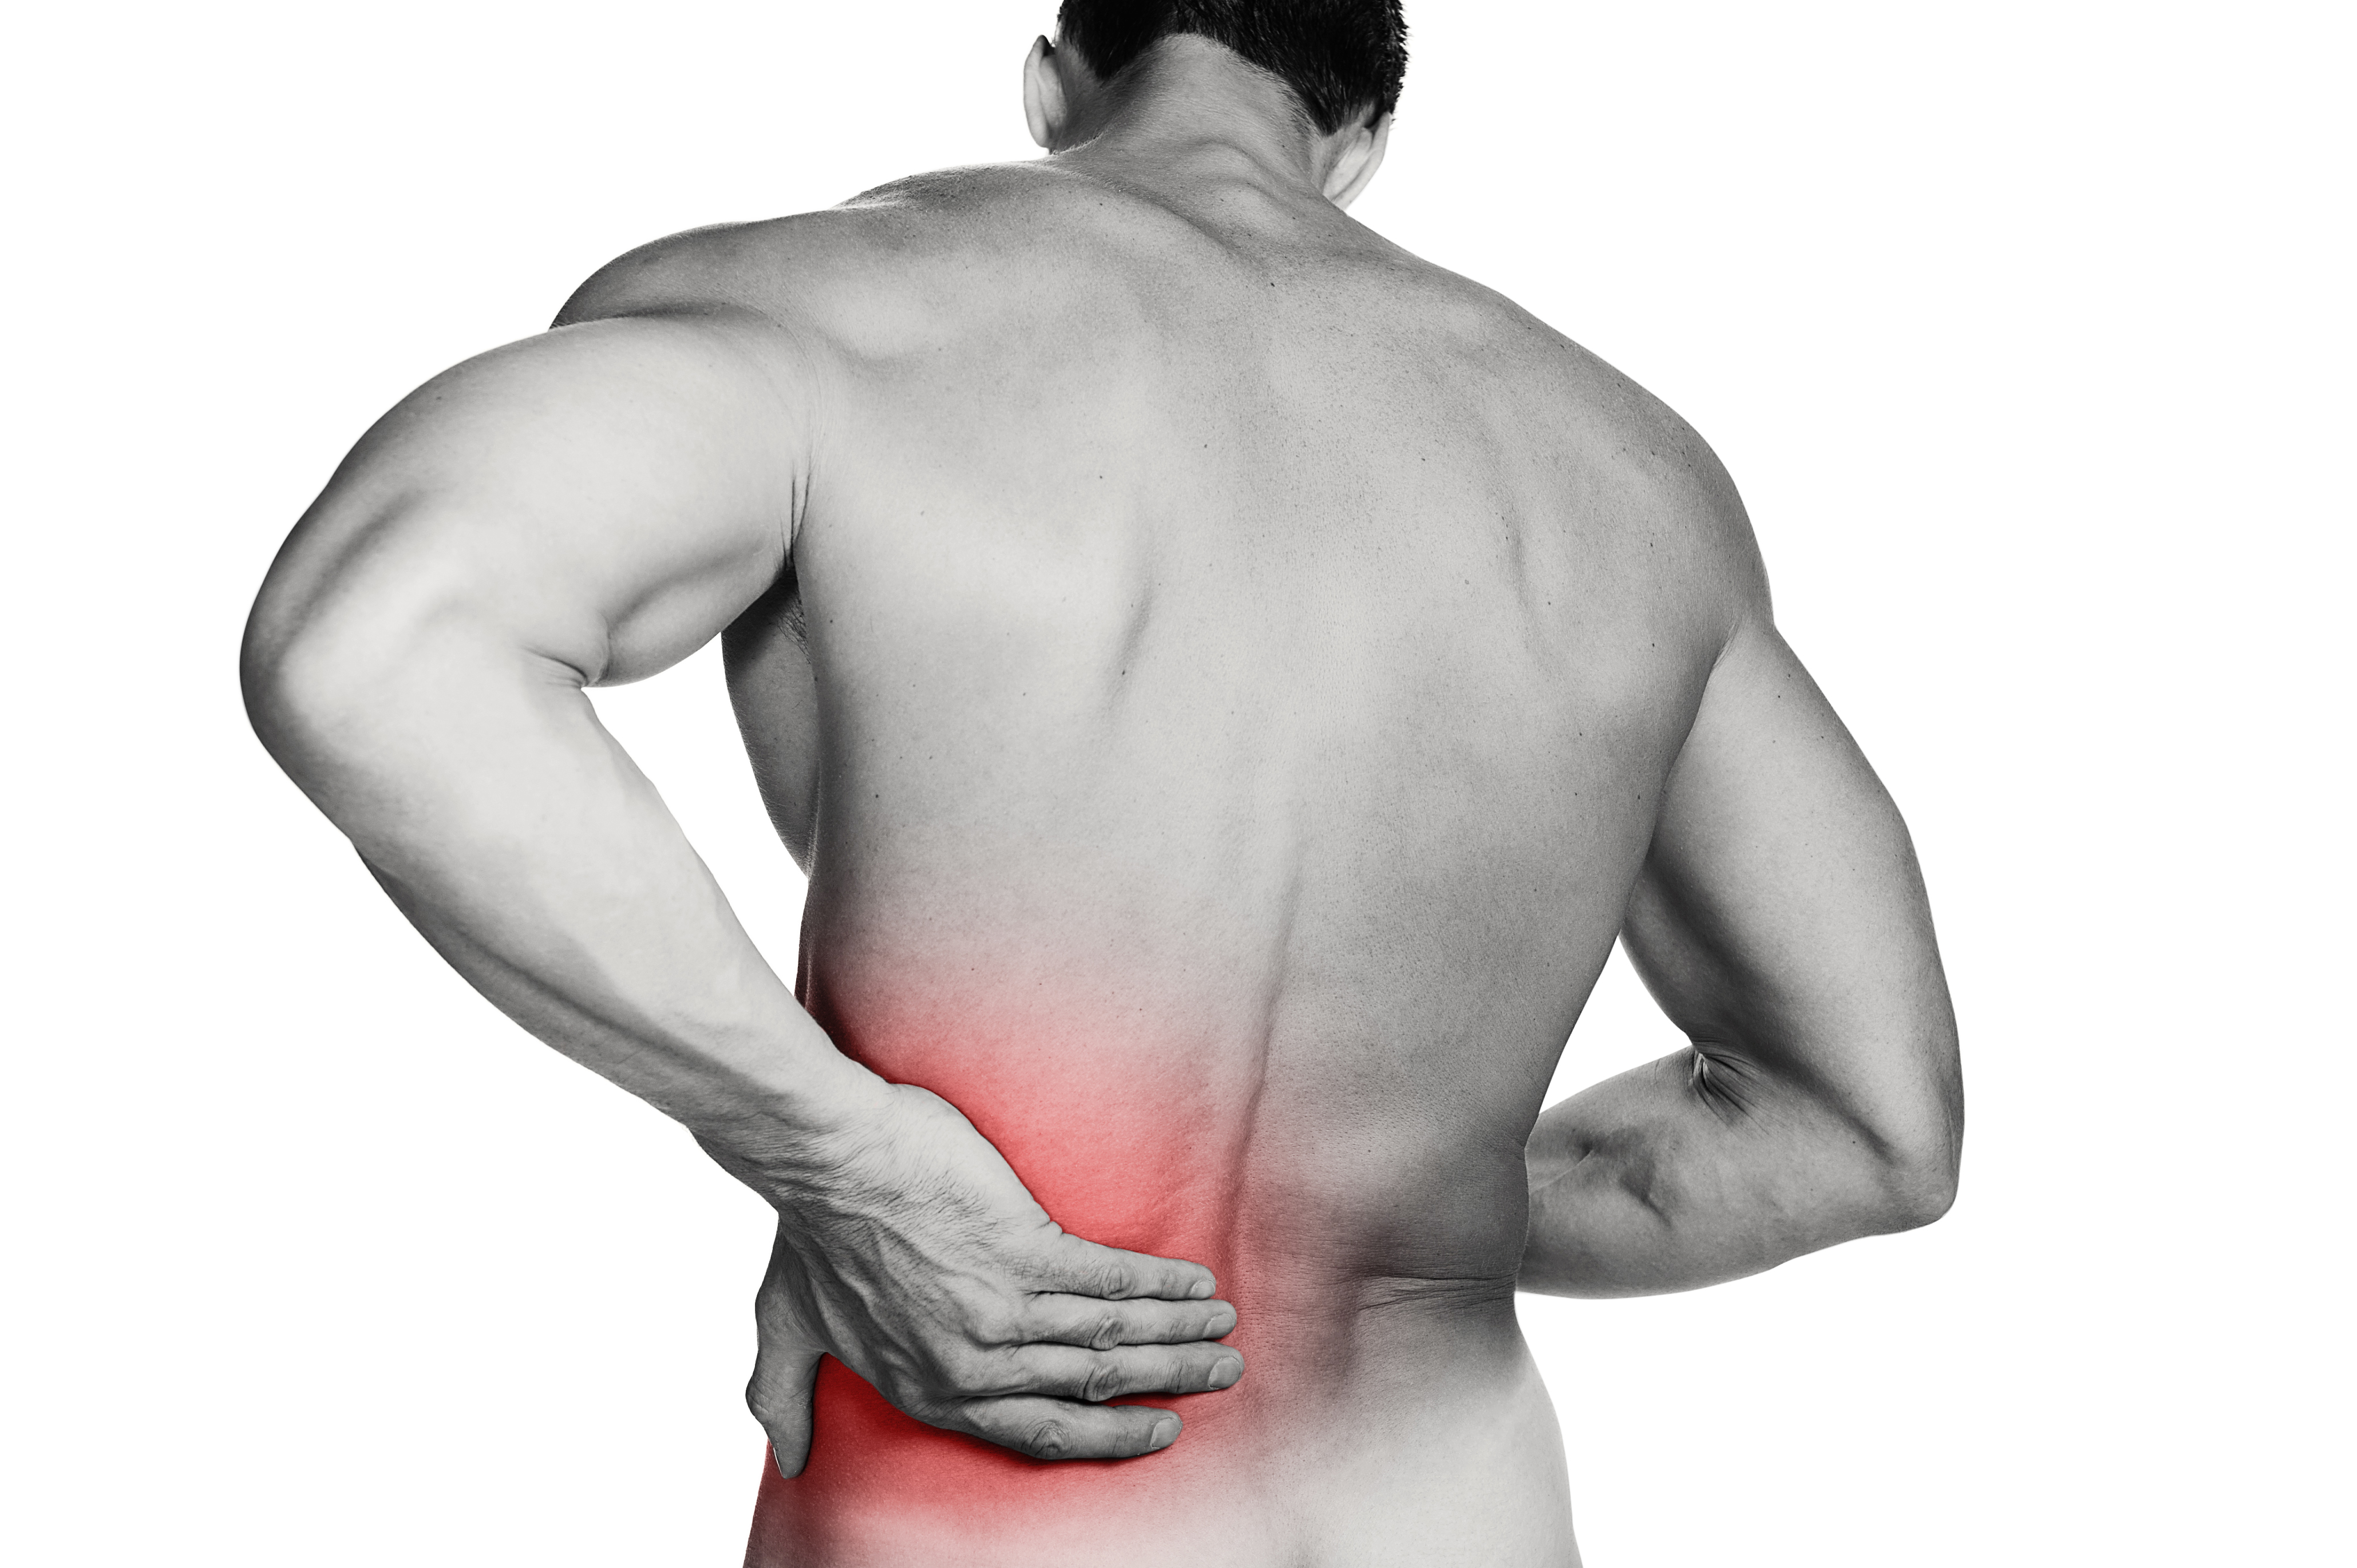 Back pain is so prevalent that it costs the country more than cancer and diabetes treatment combined